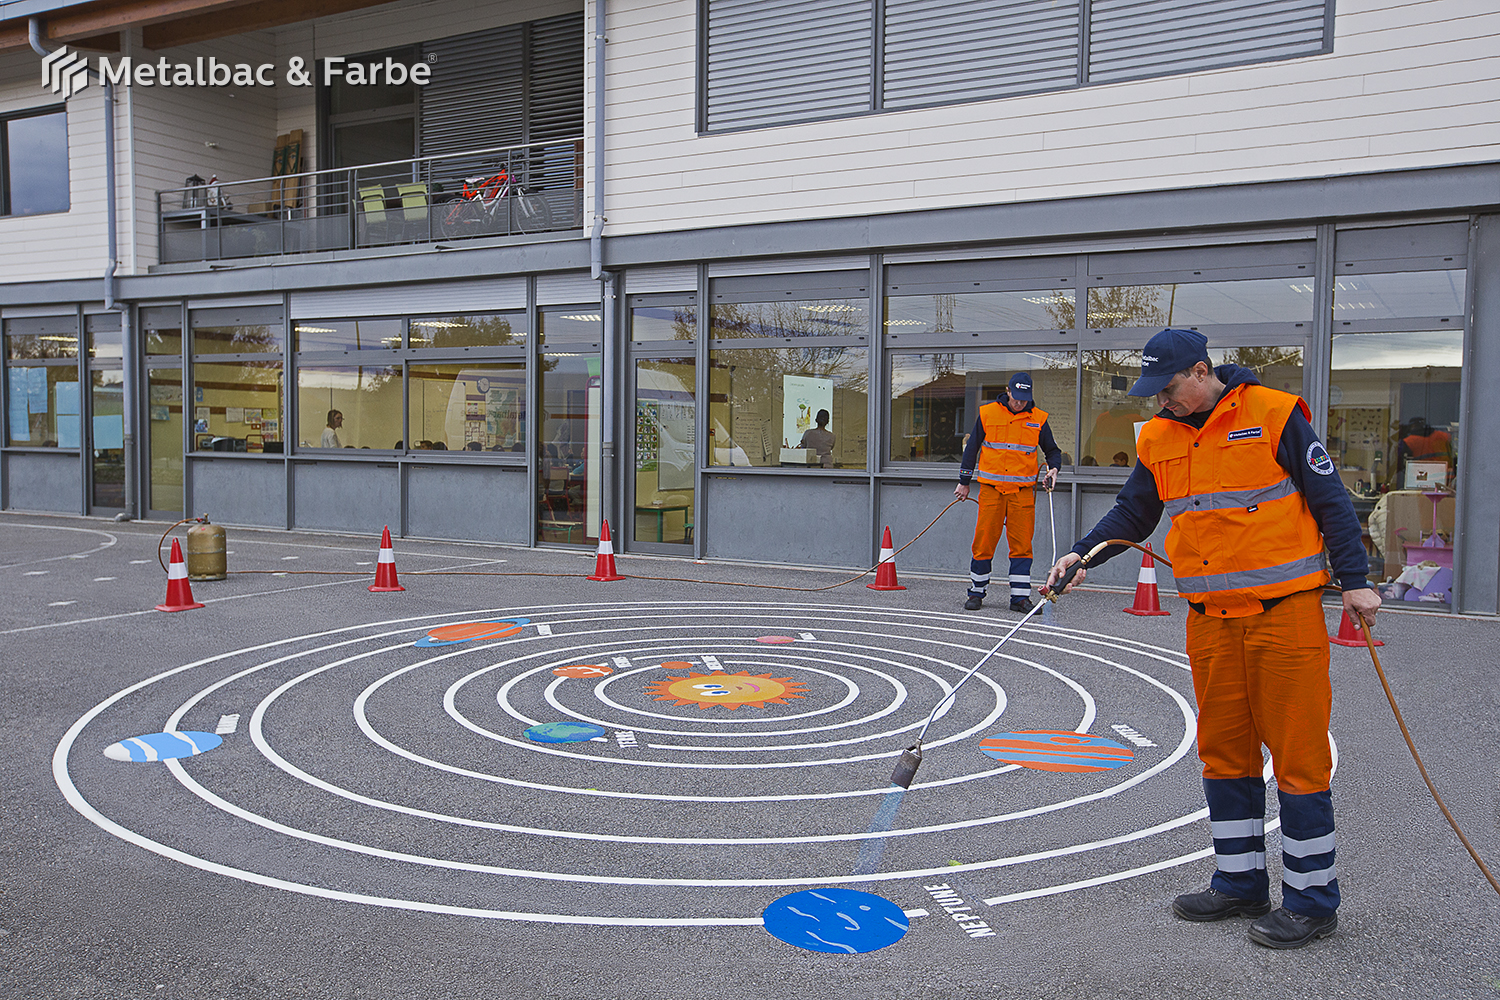 playground markings games; playground games for kids; outdoor play; math games; school yard games; educational games; asphalt games; interactive games; road markings signs; road traffic signs; turtle games; solar system games; street signs